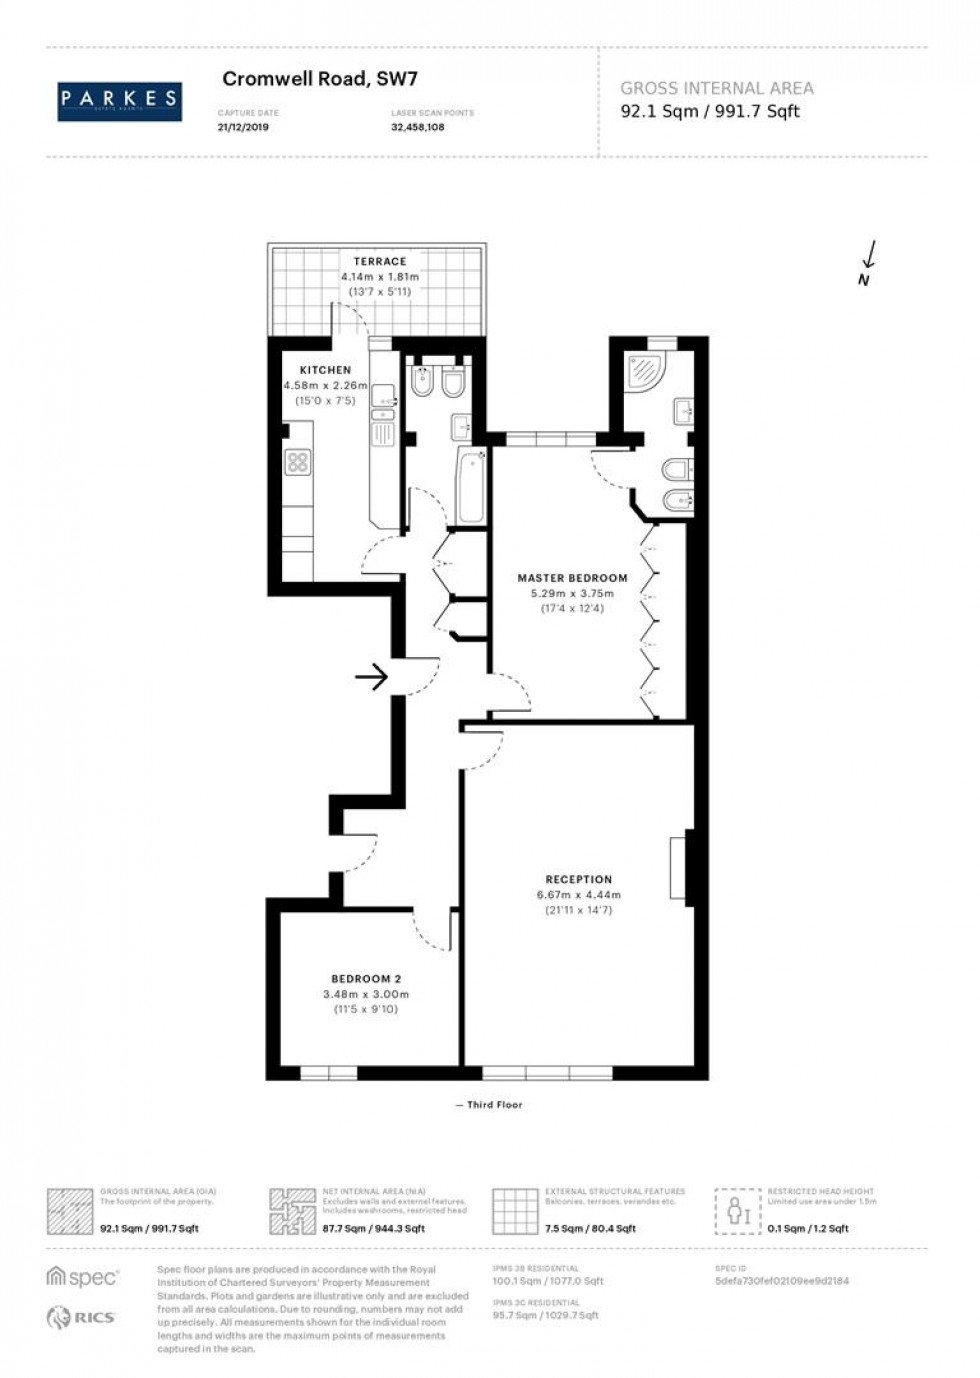 Floorplan for Cromwell Road, Kensington, SW7